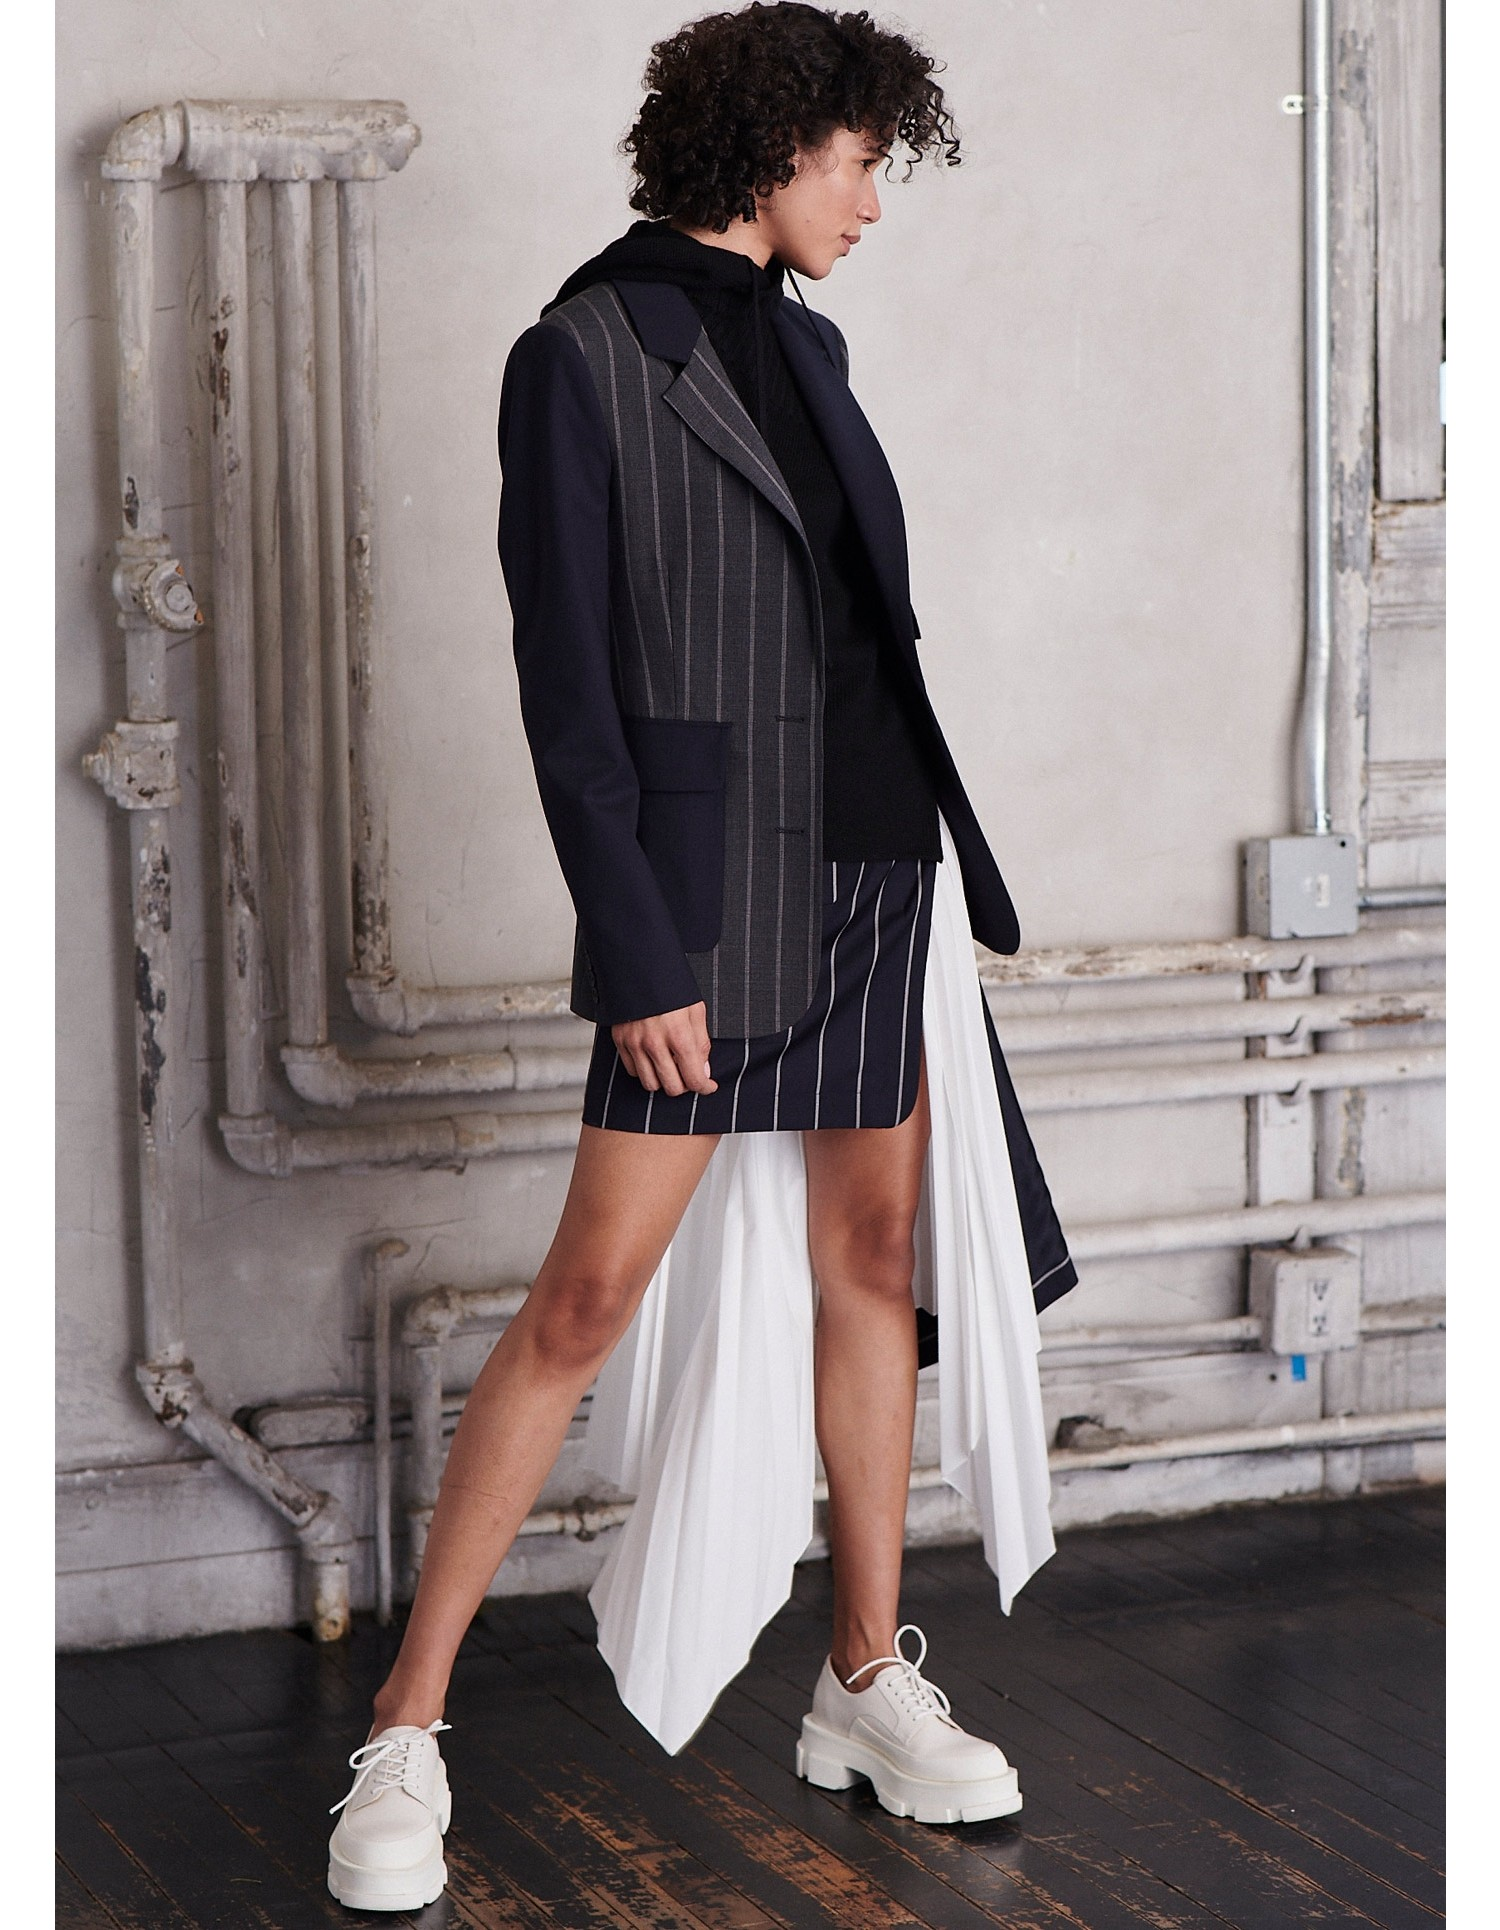 MONSE Patchwork Lace Up Jacket on Model Side View